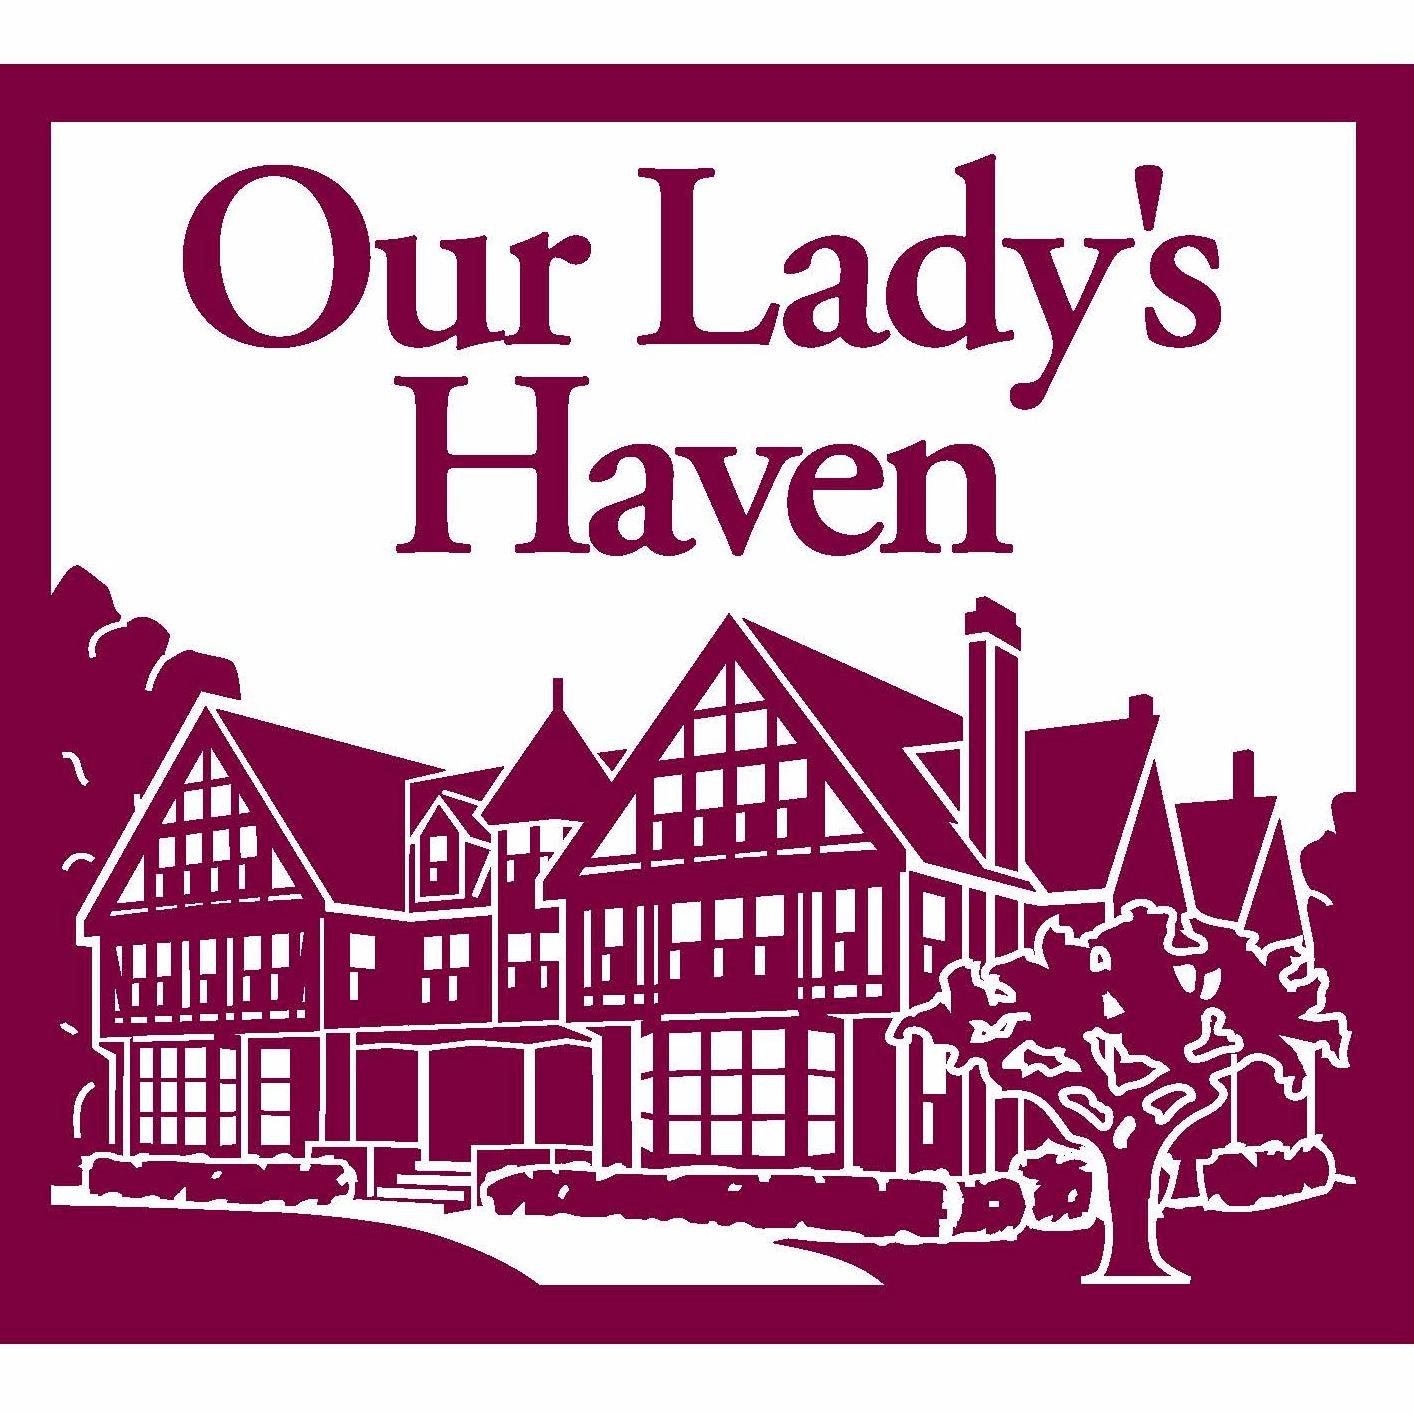 Our Lady's Haven Skilled Nursing & Rehabilitative Care - Fairhaven, MA - Extended Care